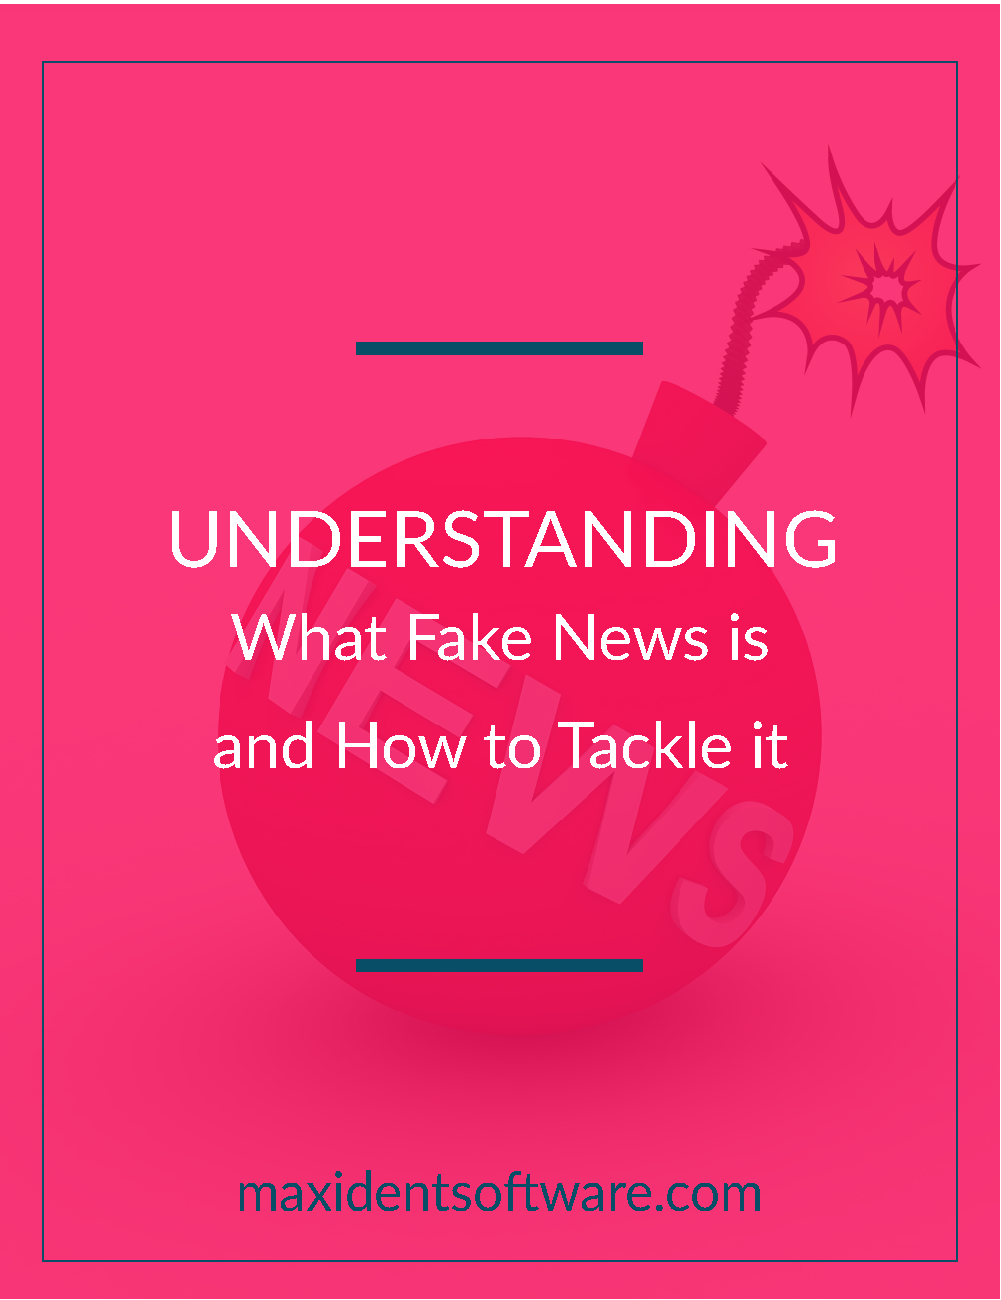 What Fake News is and How to Tackle it